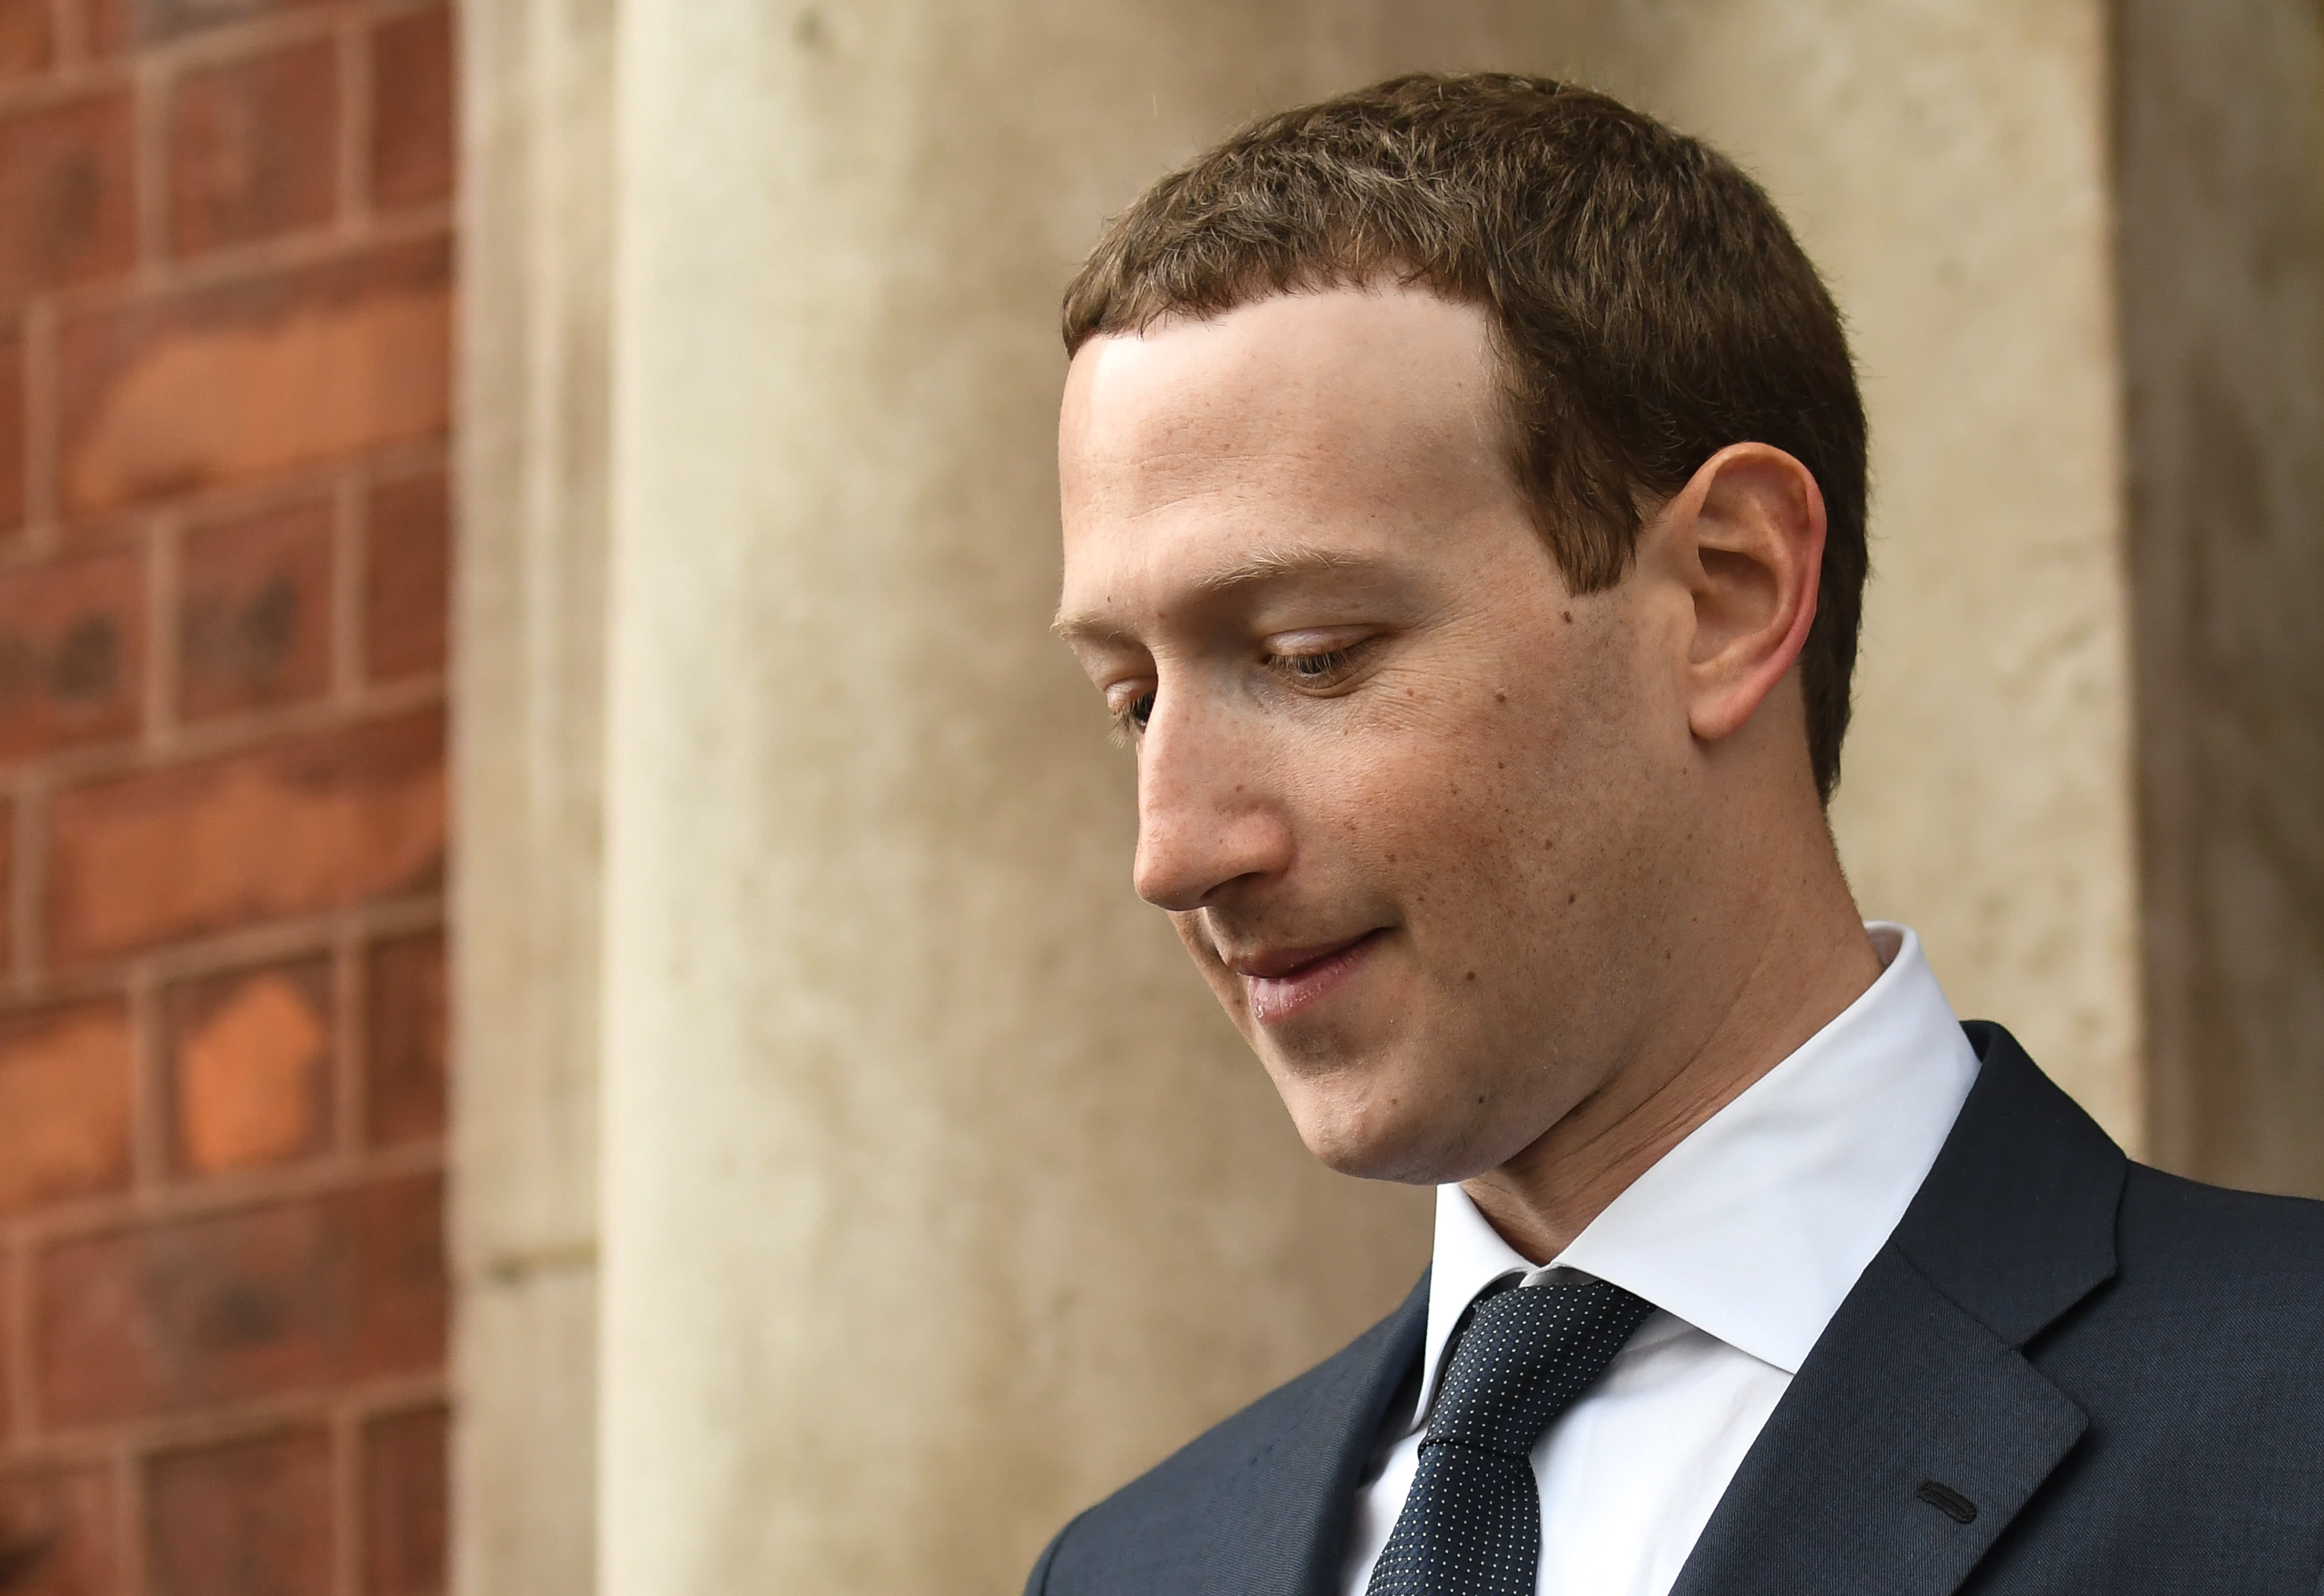 Facebook to pay $5 billion FTC fine, but Gene Munster says resolution is  months away